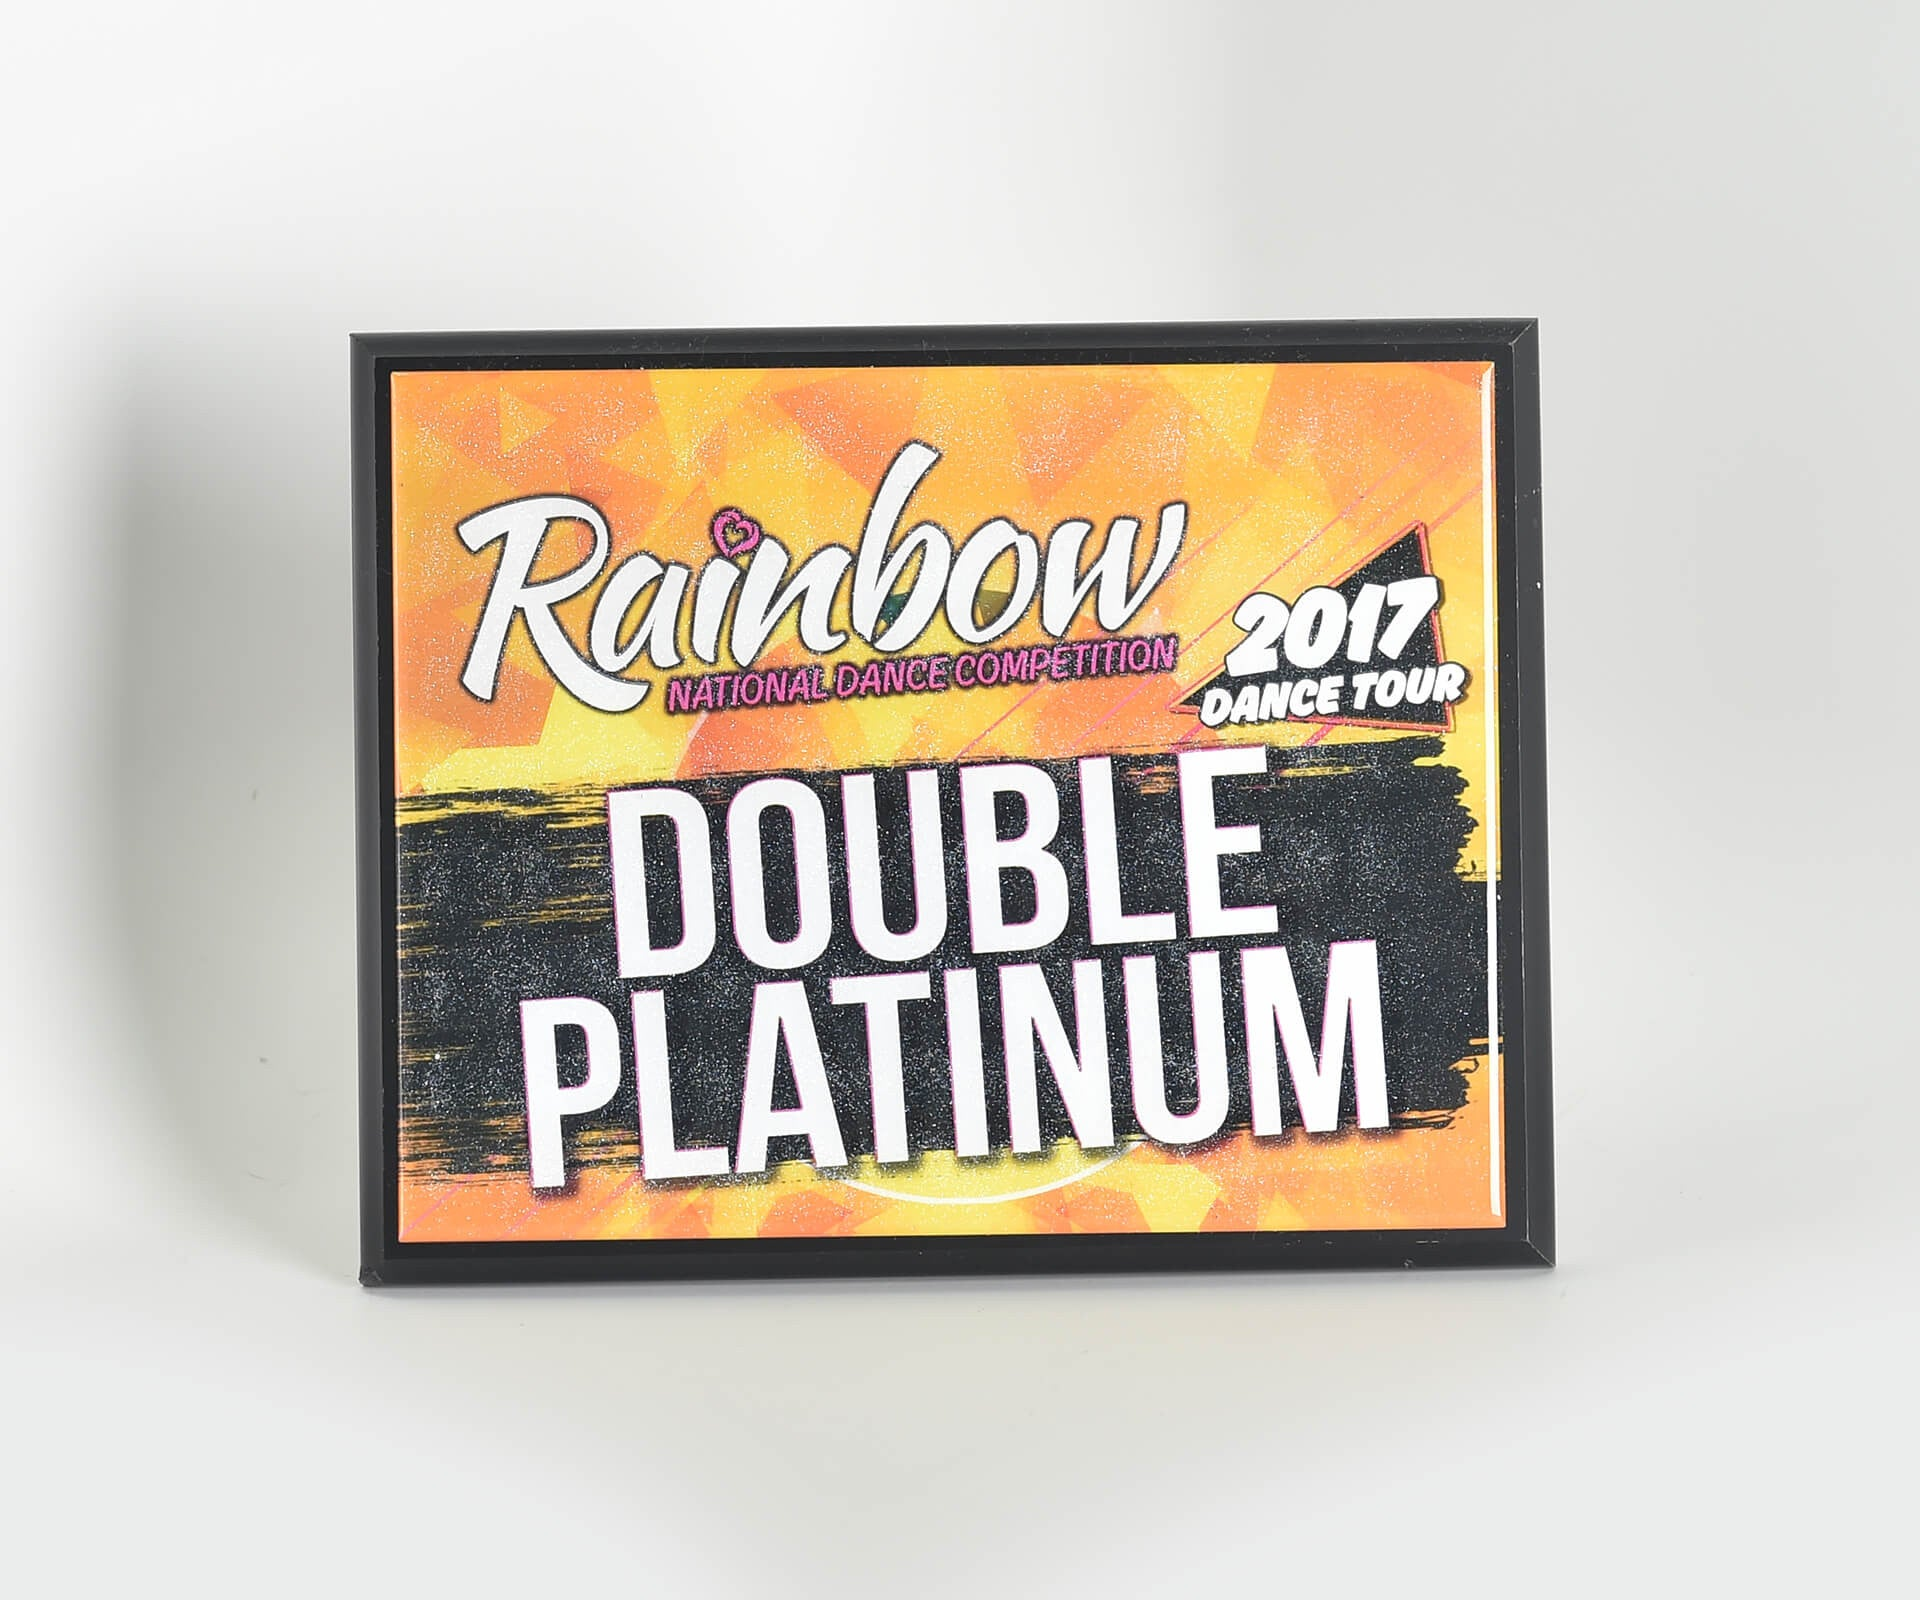 Rainbow Double Platinum Award